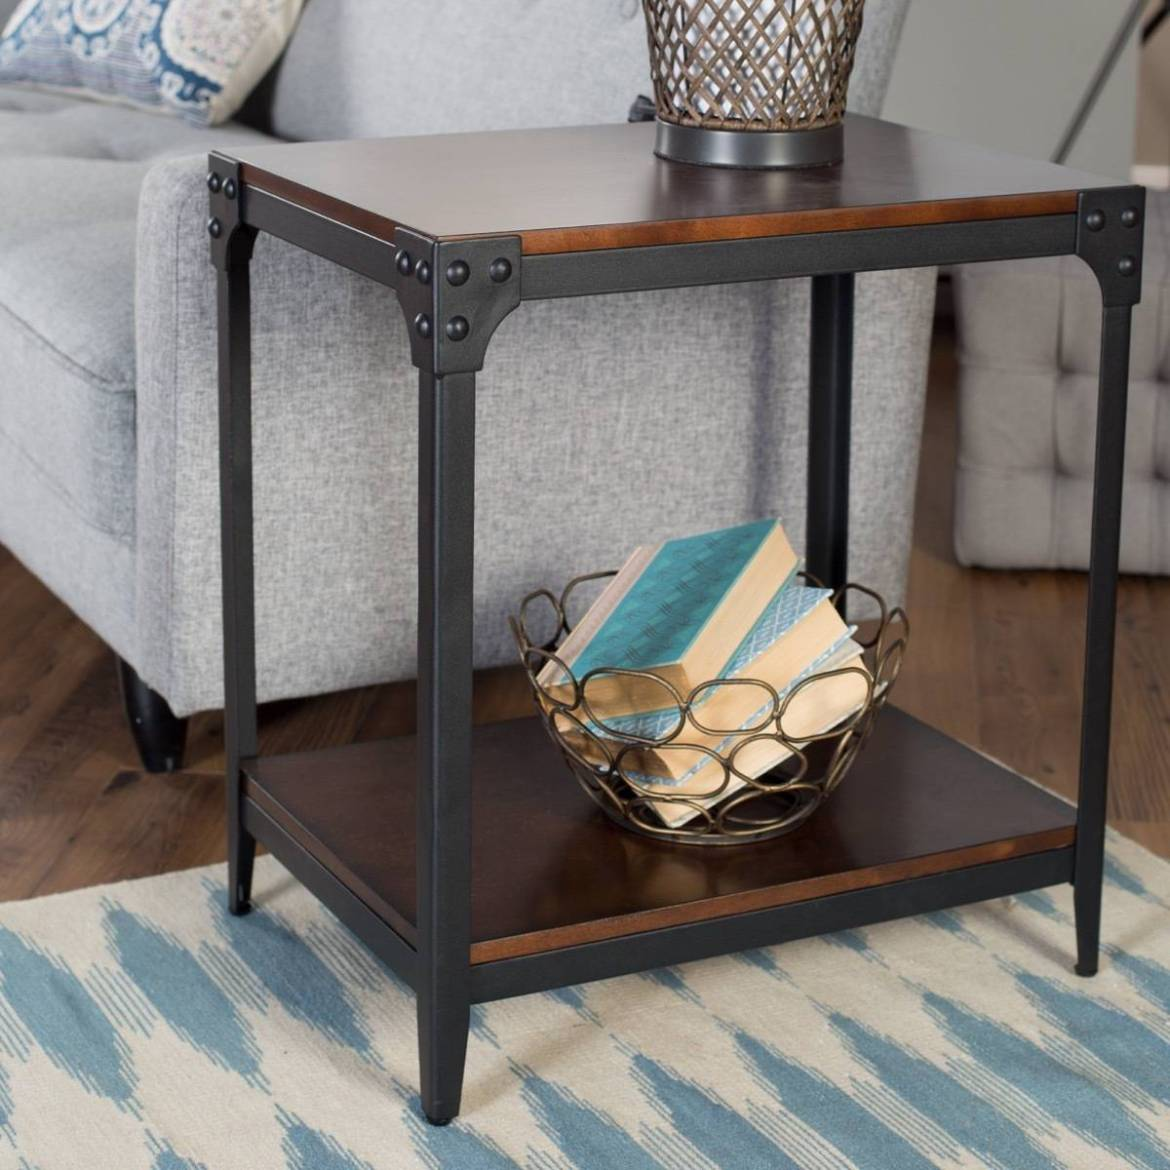 Trenton end table from Hayneedle